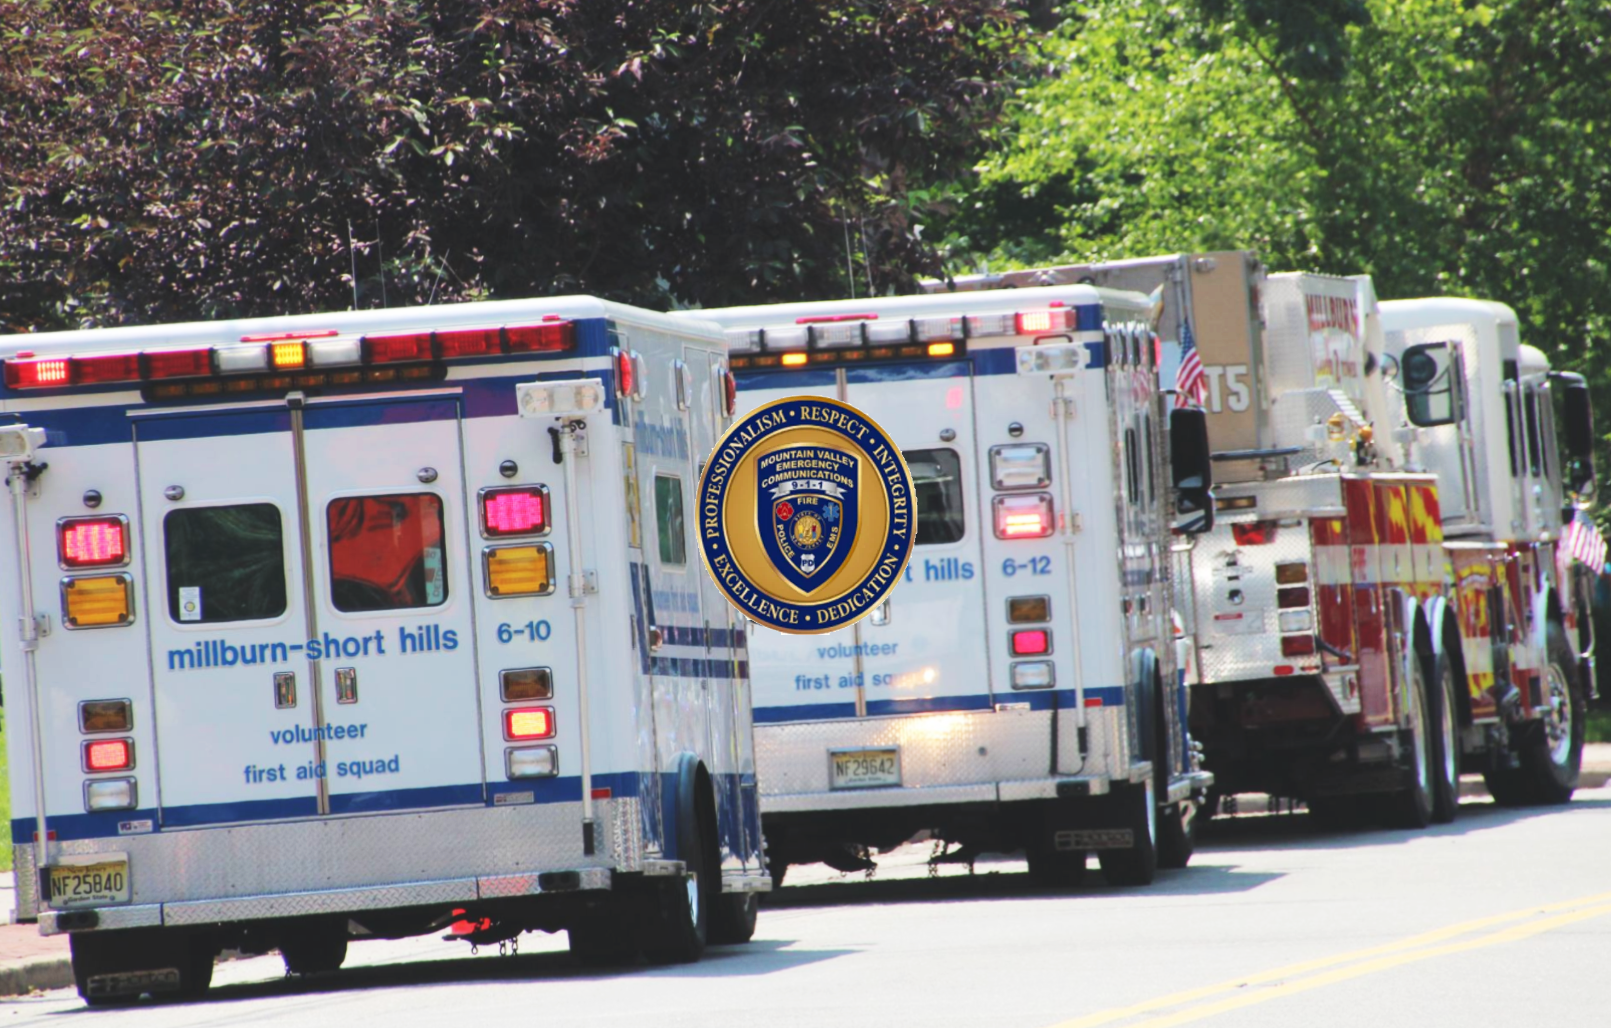 Millburn Short Hills First Responder ambulances driving into distance